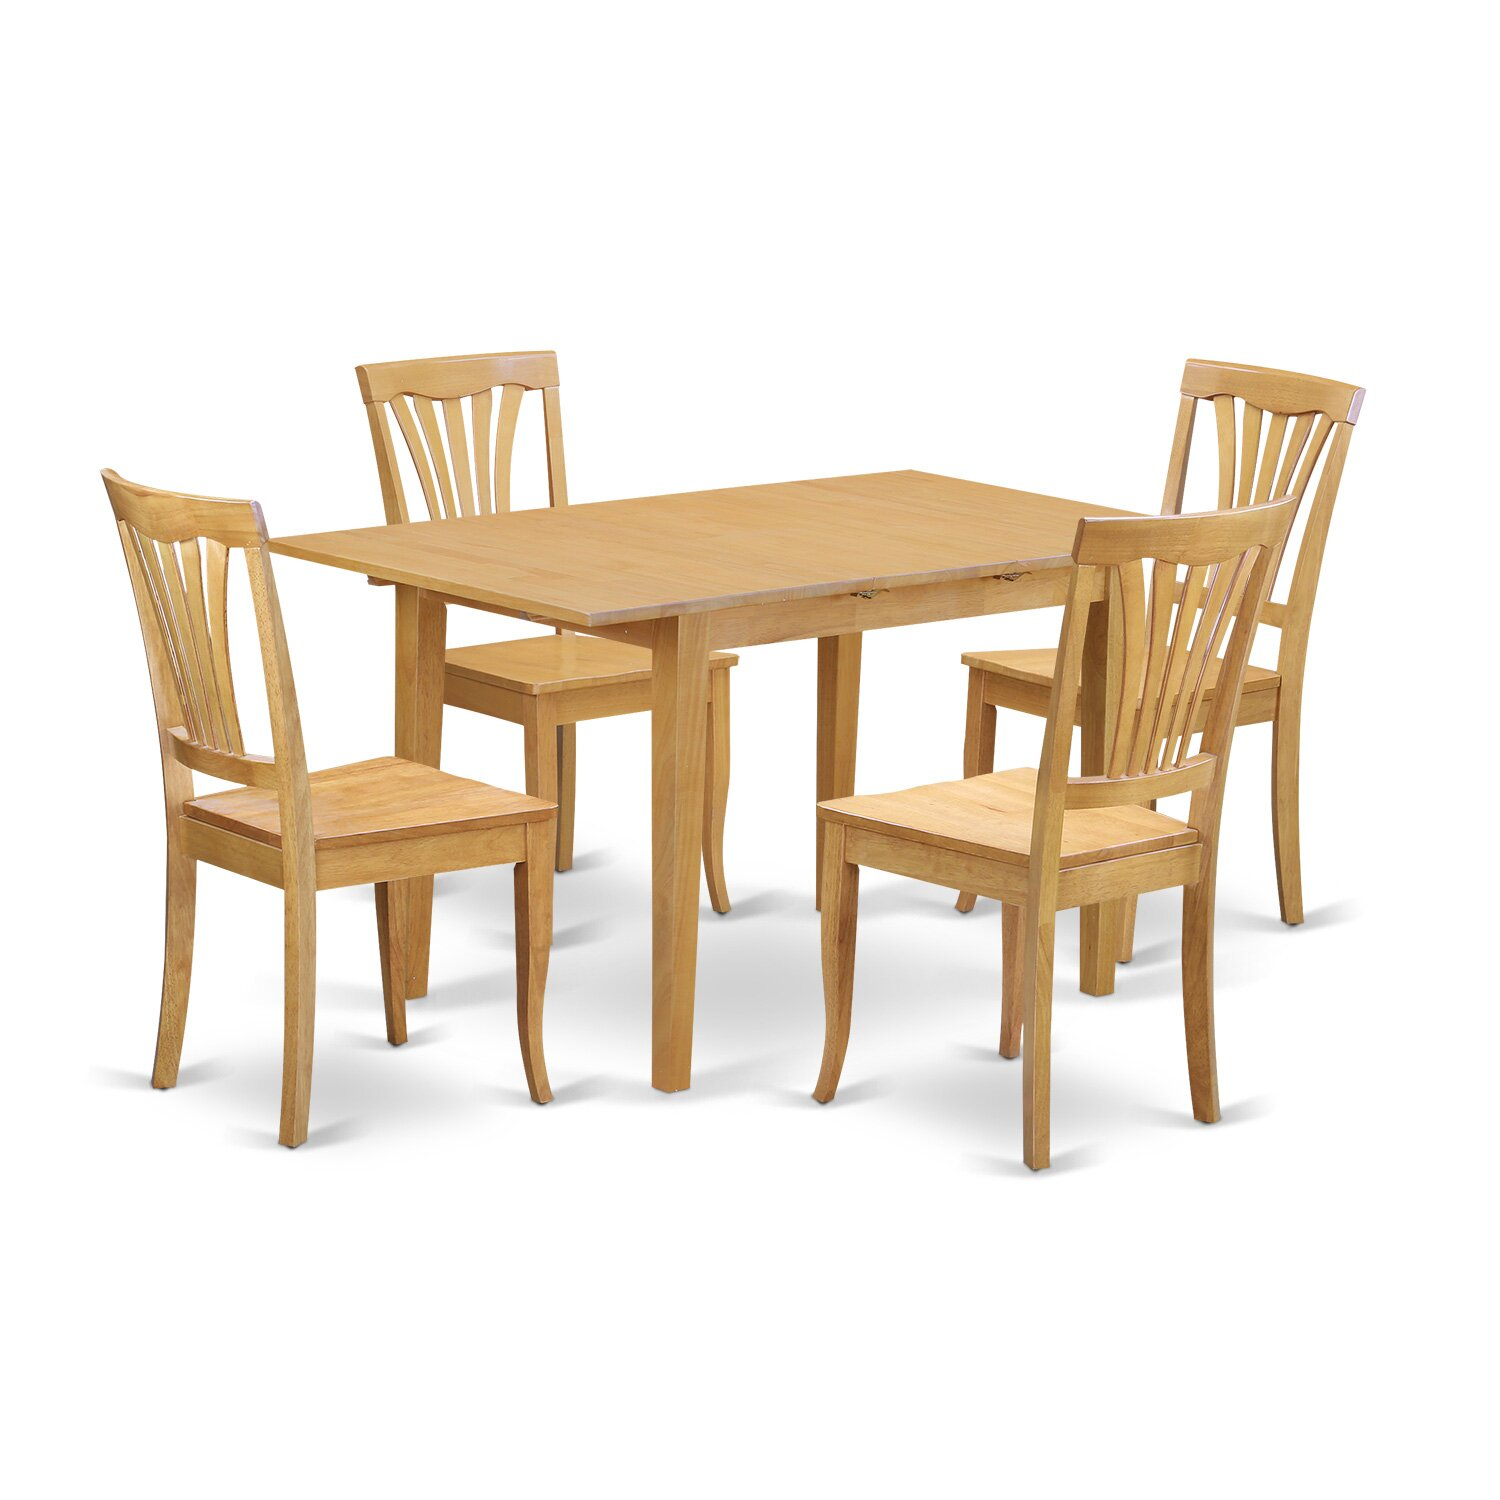 East west norfolk 5 piece dining set wayfair for Kitchenette sets furniture